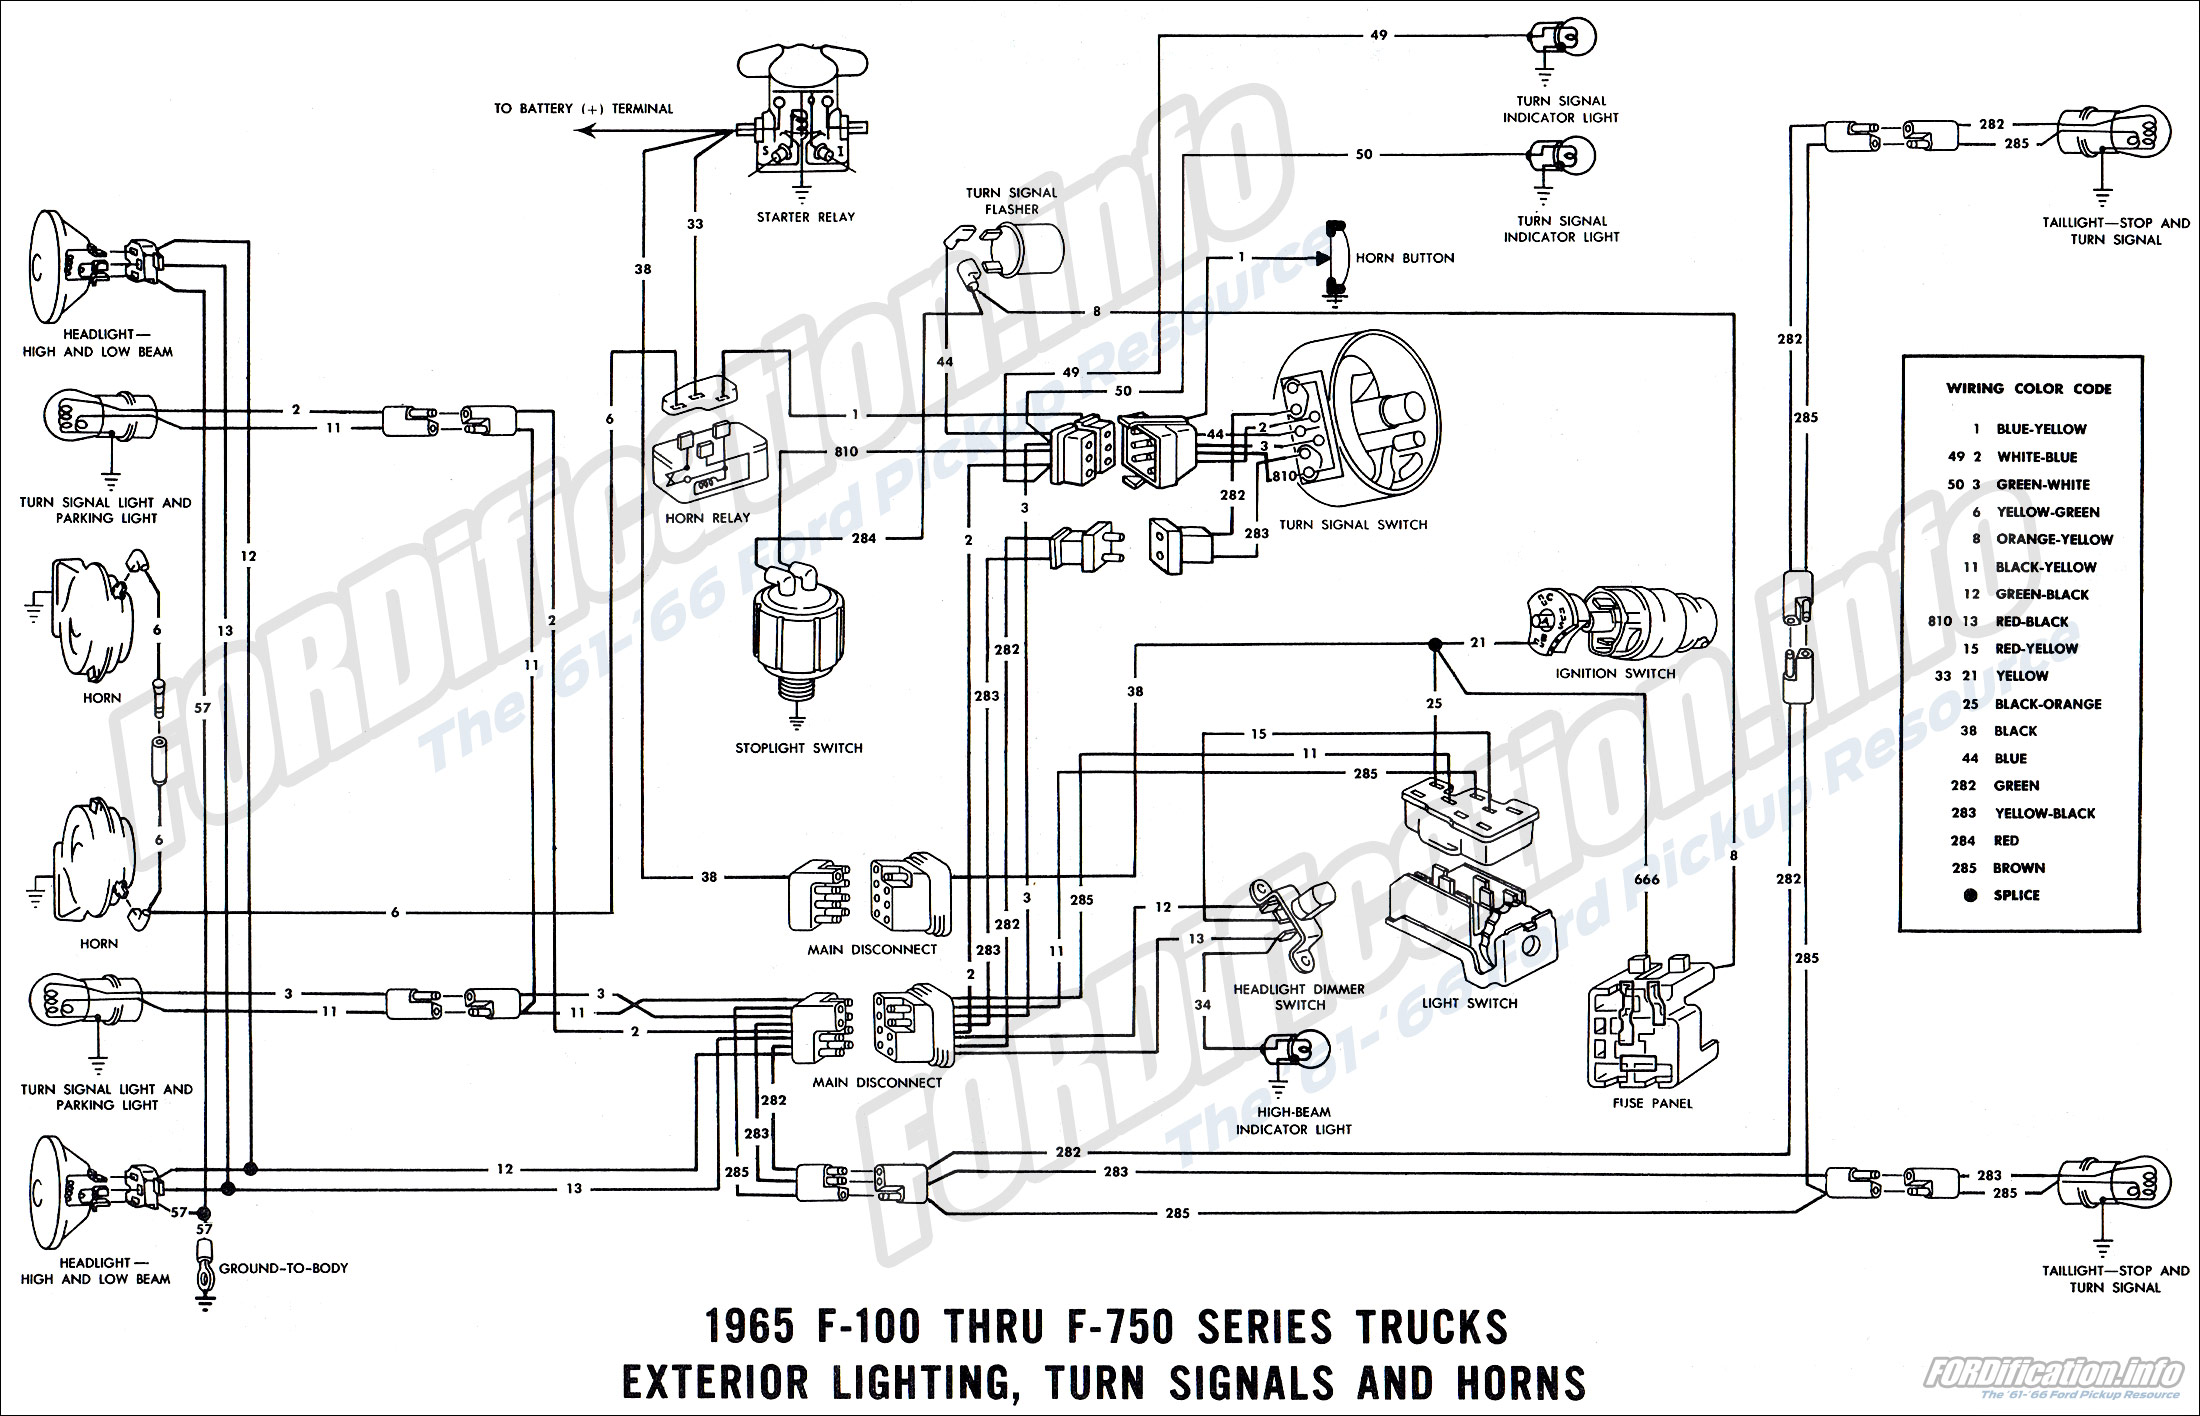 1965 ford truck wiring diagrams fordification info the 61 66 rh fordification info 1965 ford mustang wiring diagram 1965 ford ranchero wiring diagram